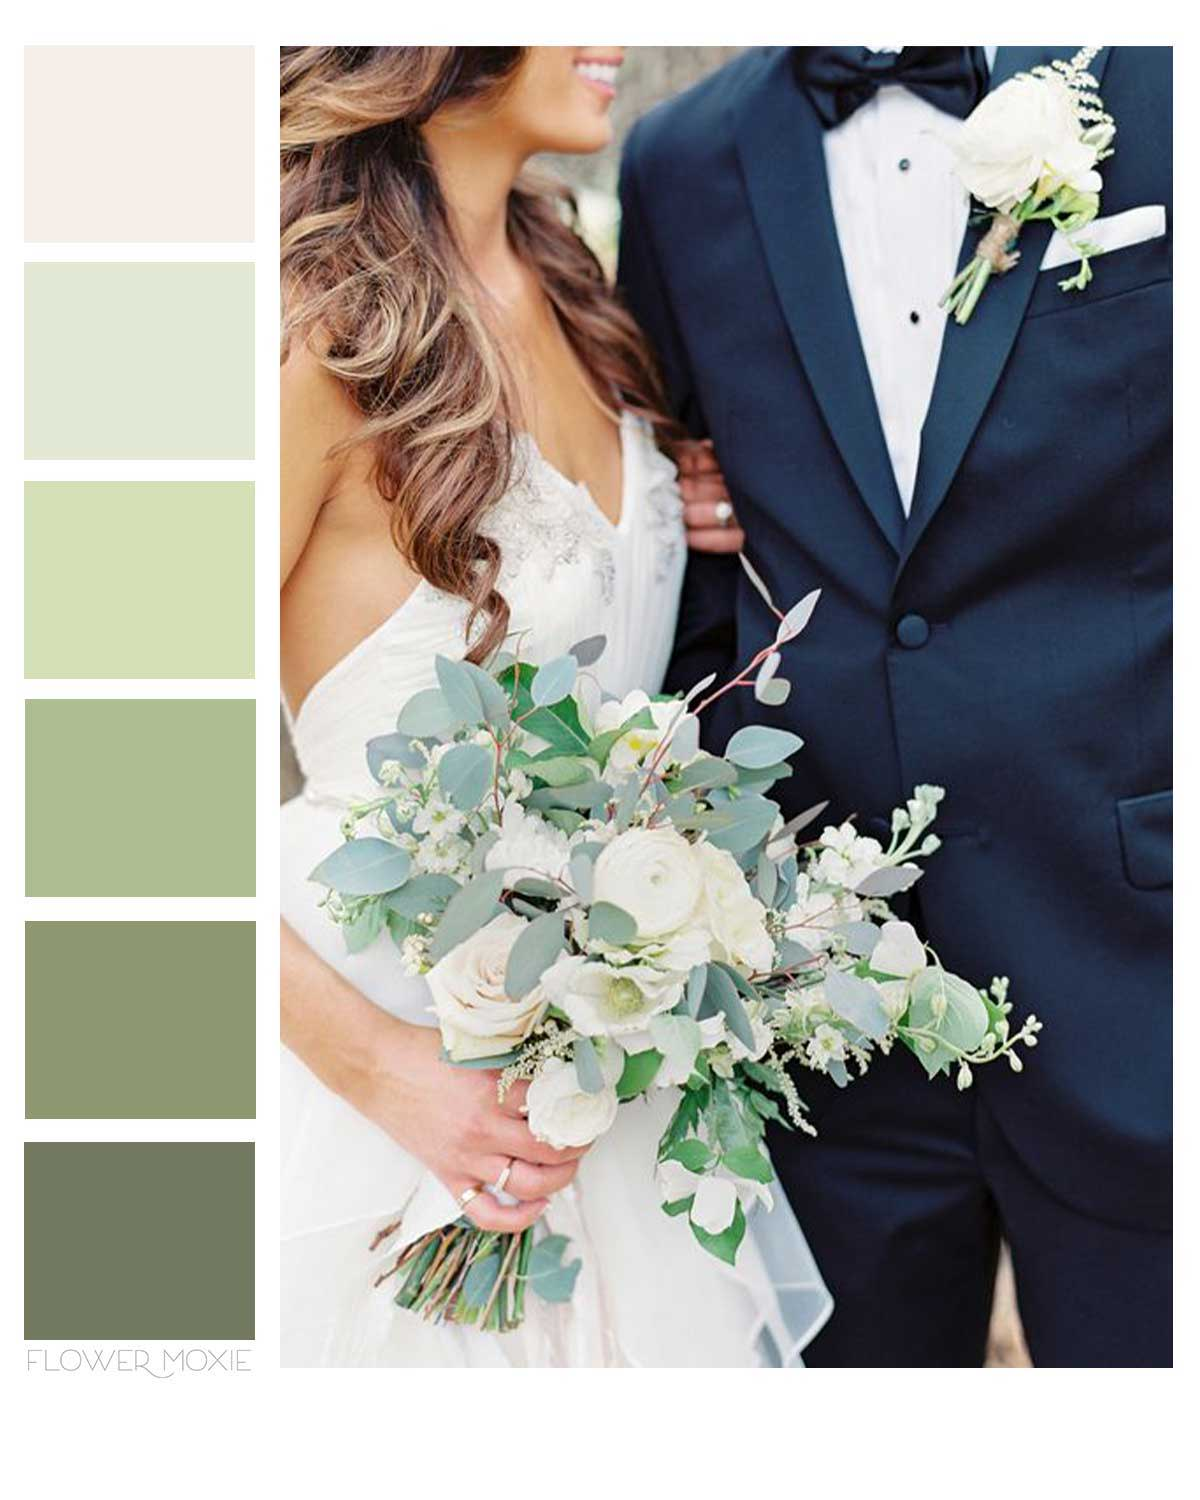 Cream and eucalyptus wedding flower packages